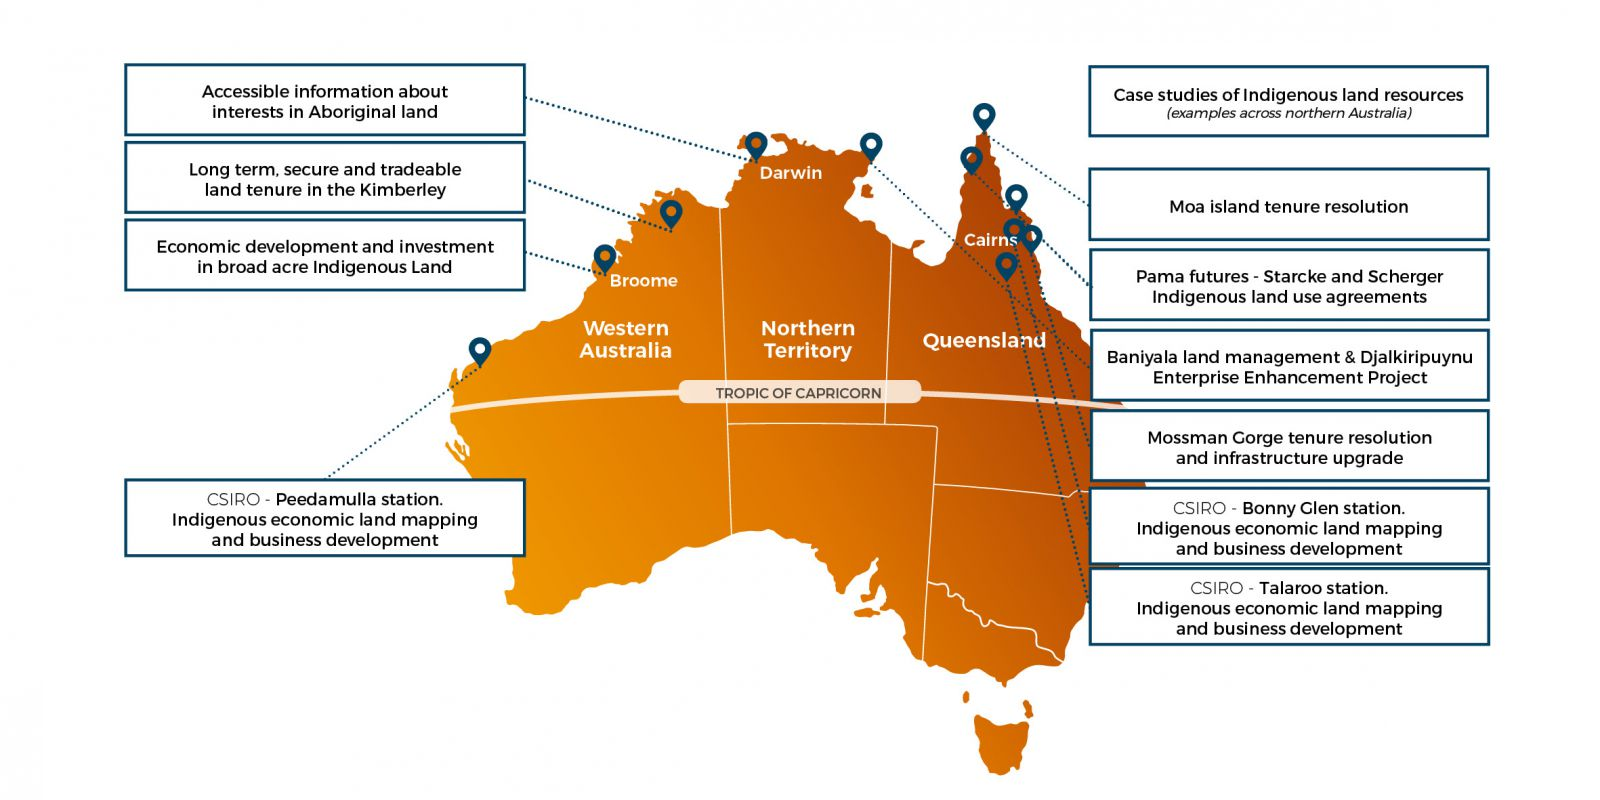 The different land tenure reform pilots currently undertaken by the Australian Government, imposed over an image of Australia divided by state lines. Emphasis is placed on Broome, Darwin and Cairns in Western Australia, the Northern Territory and Queensland.